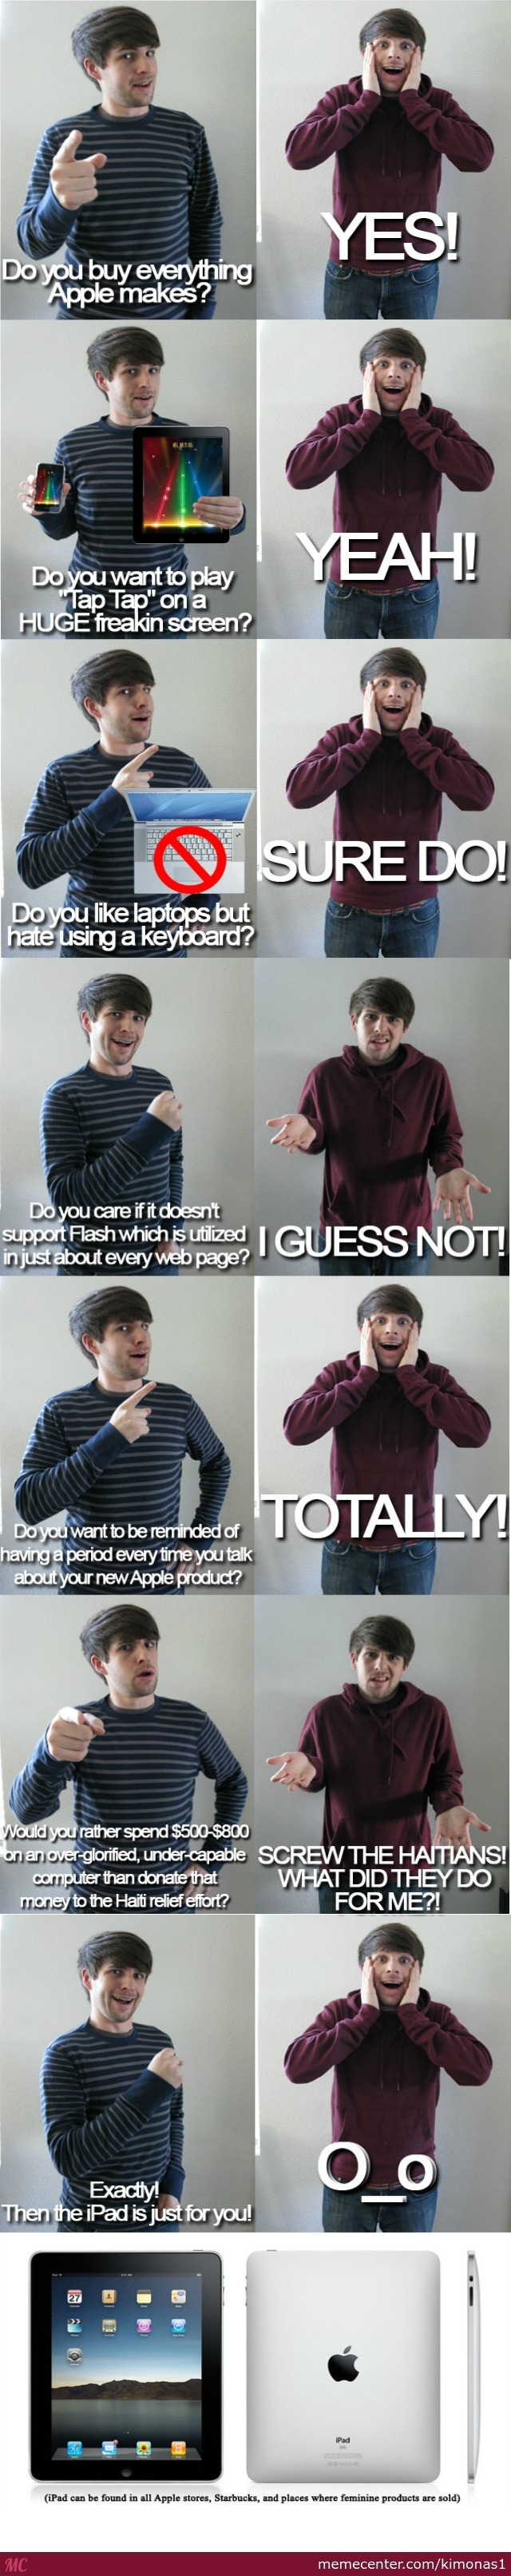 Ipad Smosh